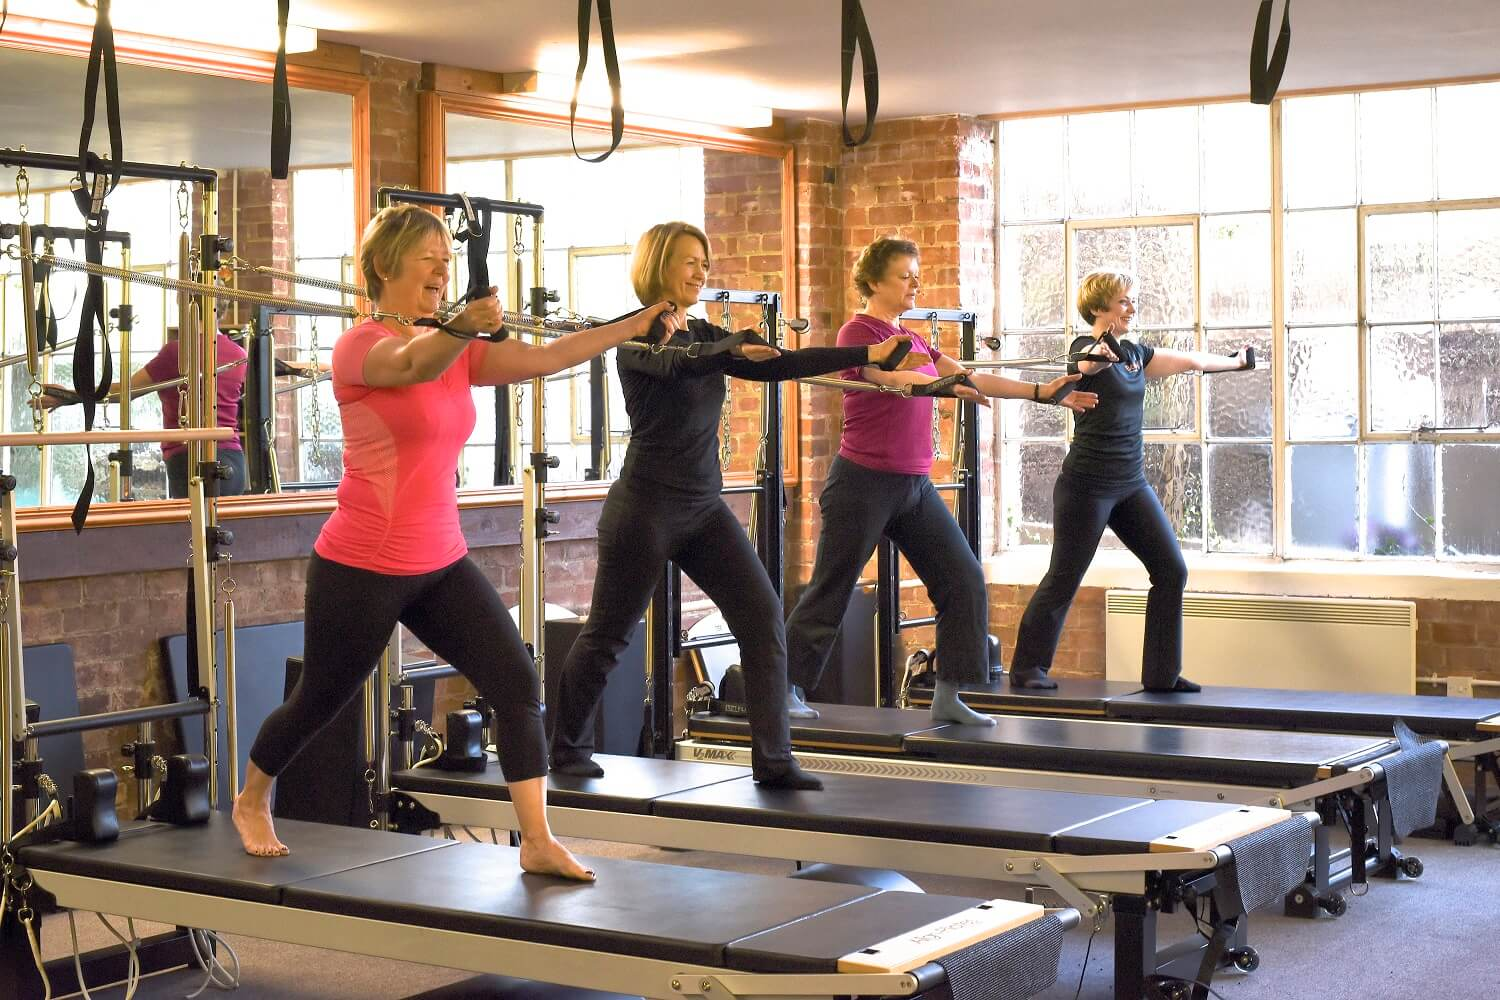 ladies standing on reformer beds